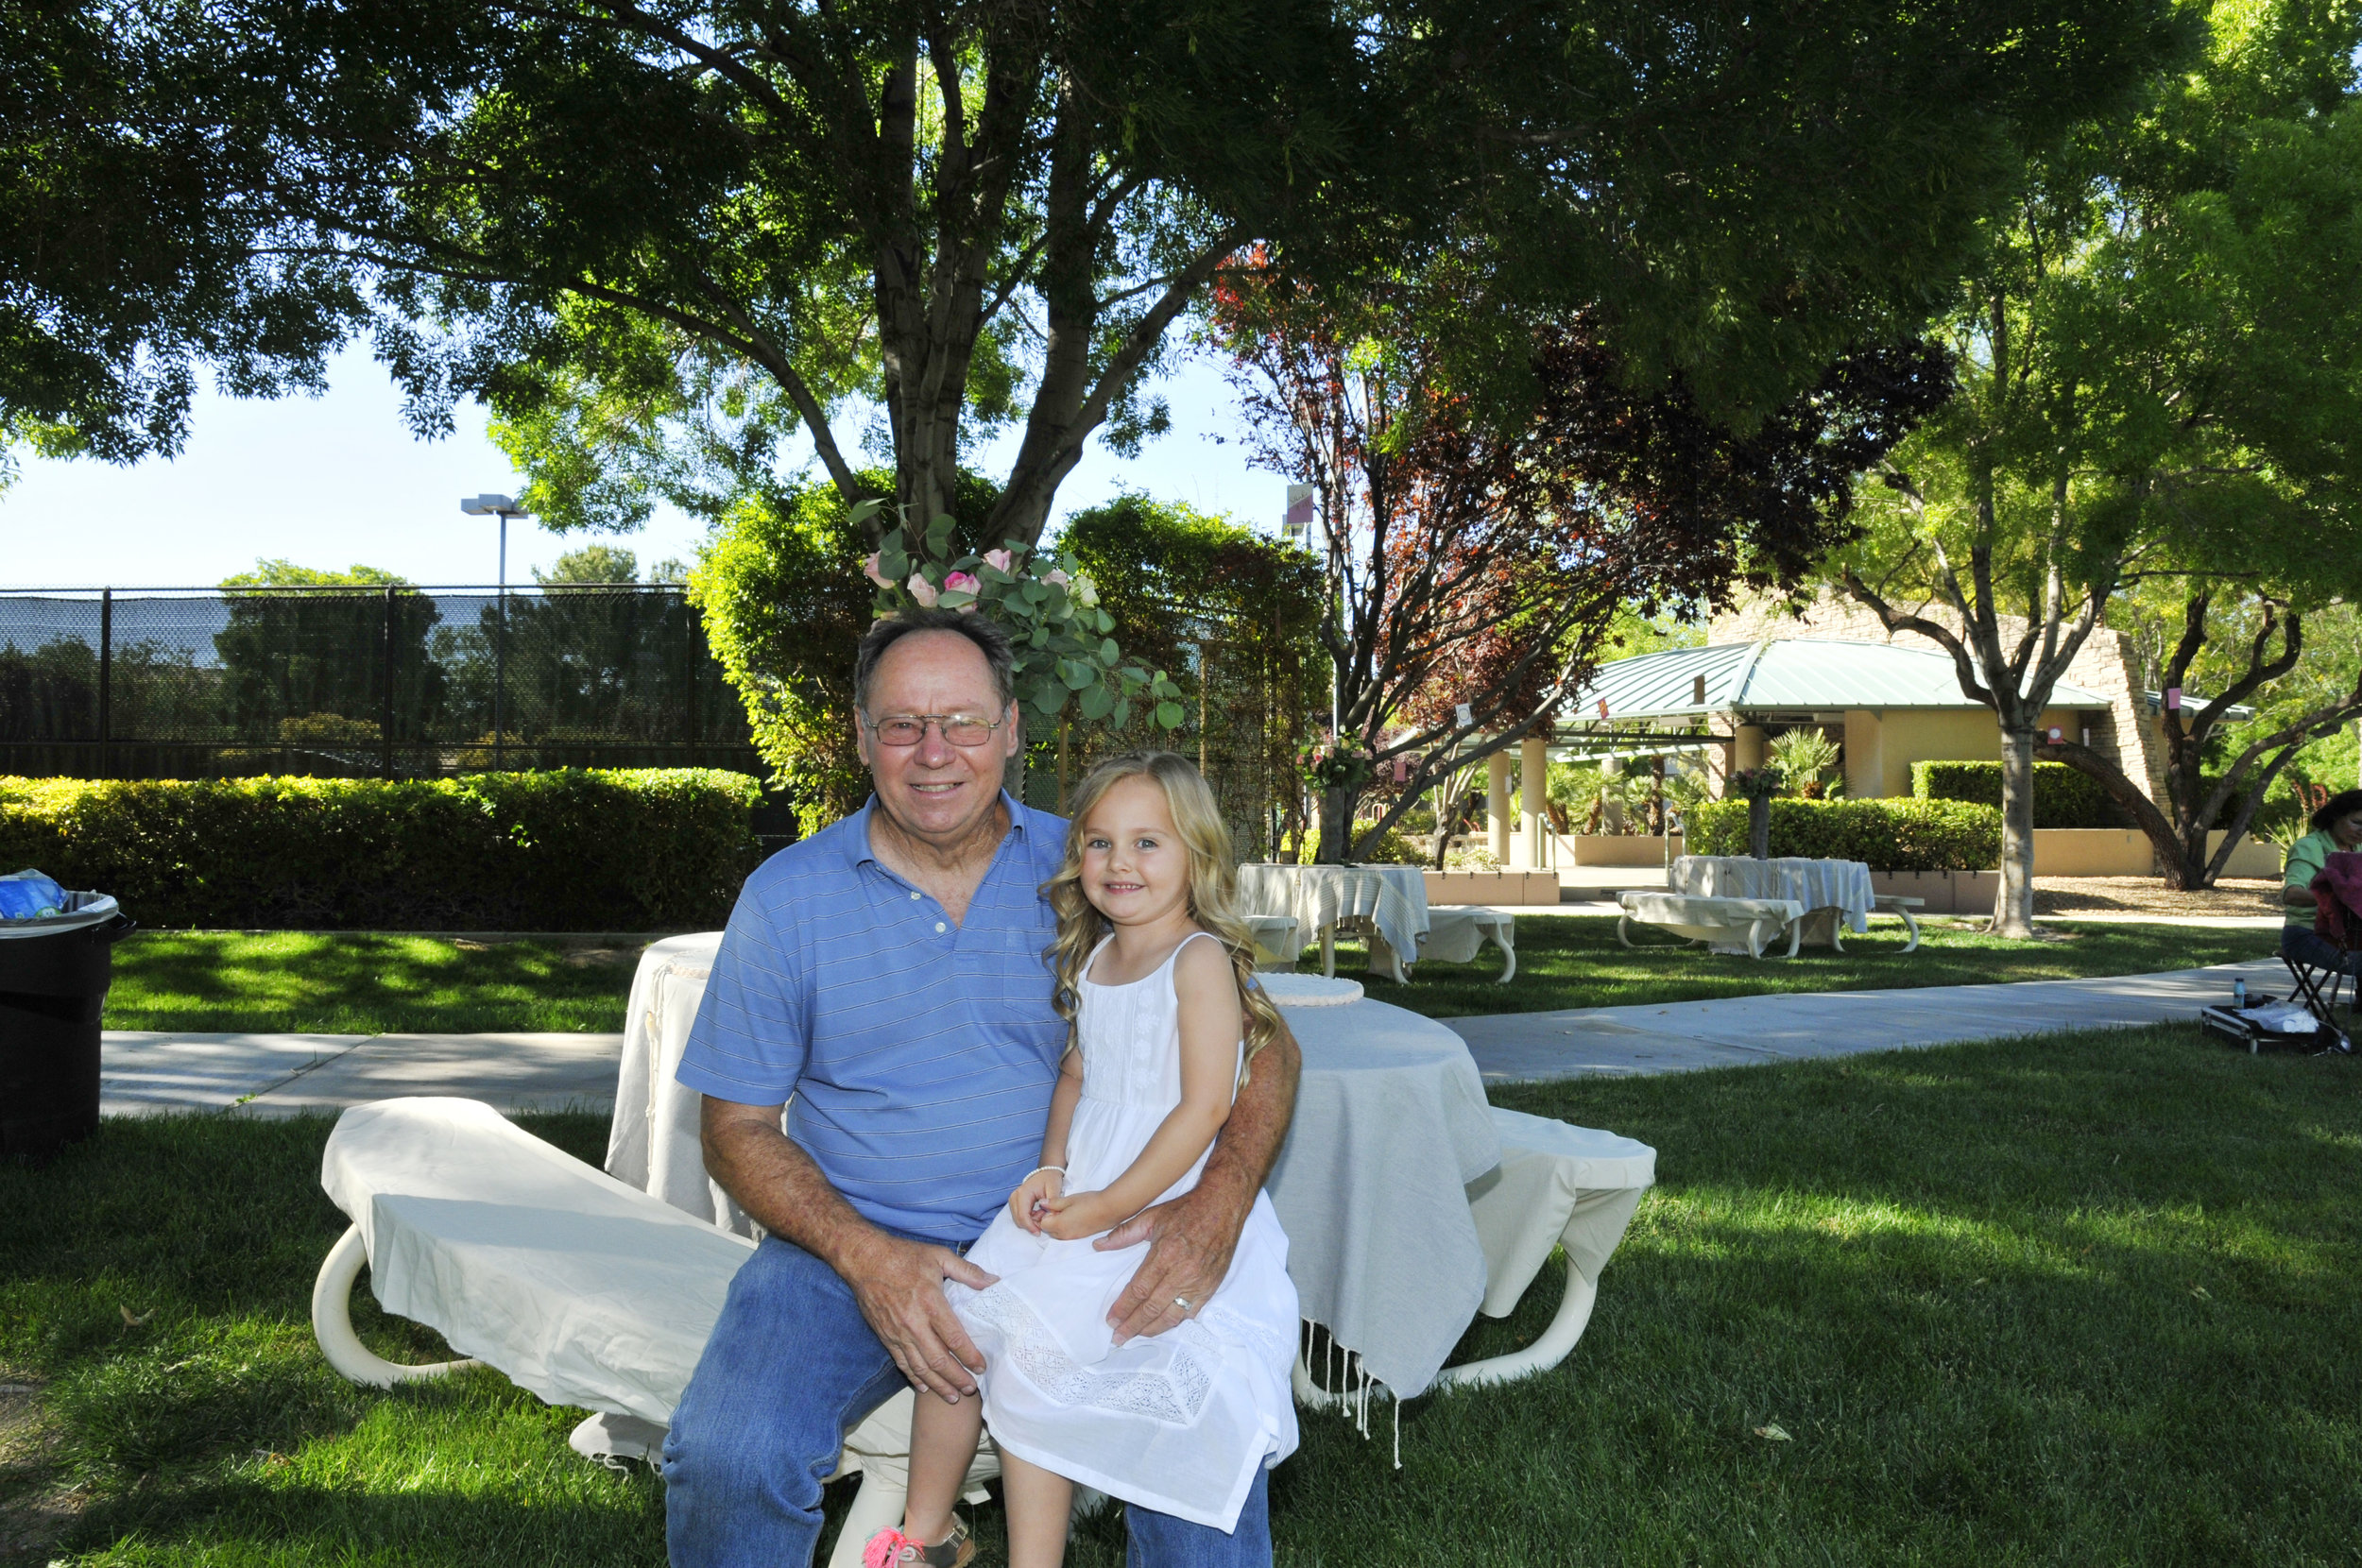 Grandpapa with his grandgirl, Ava.  Photo by Trevizo Photography.